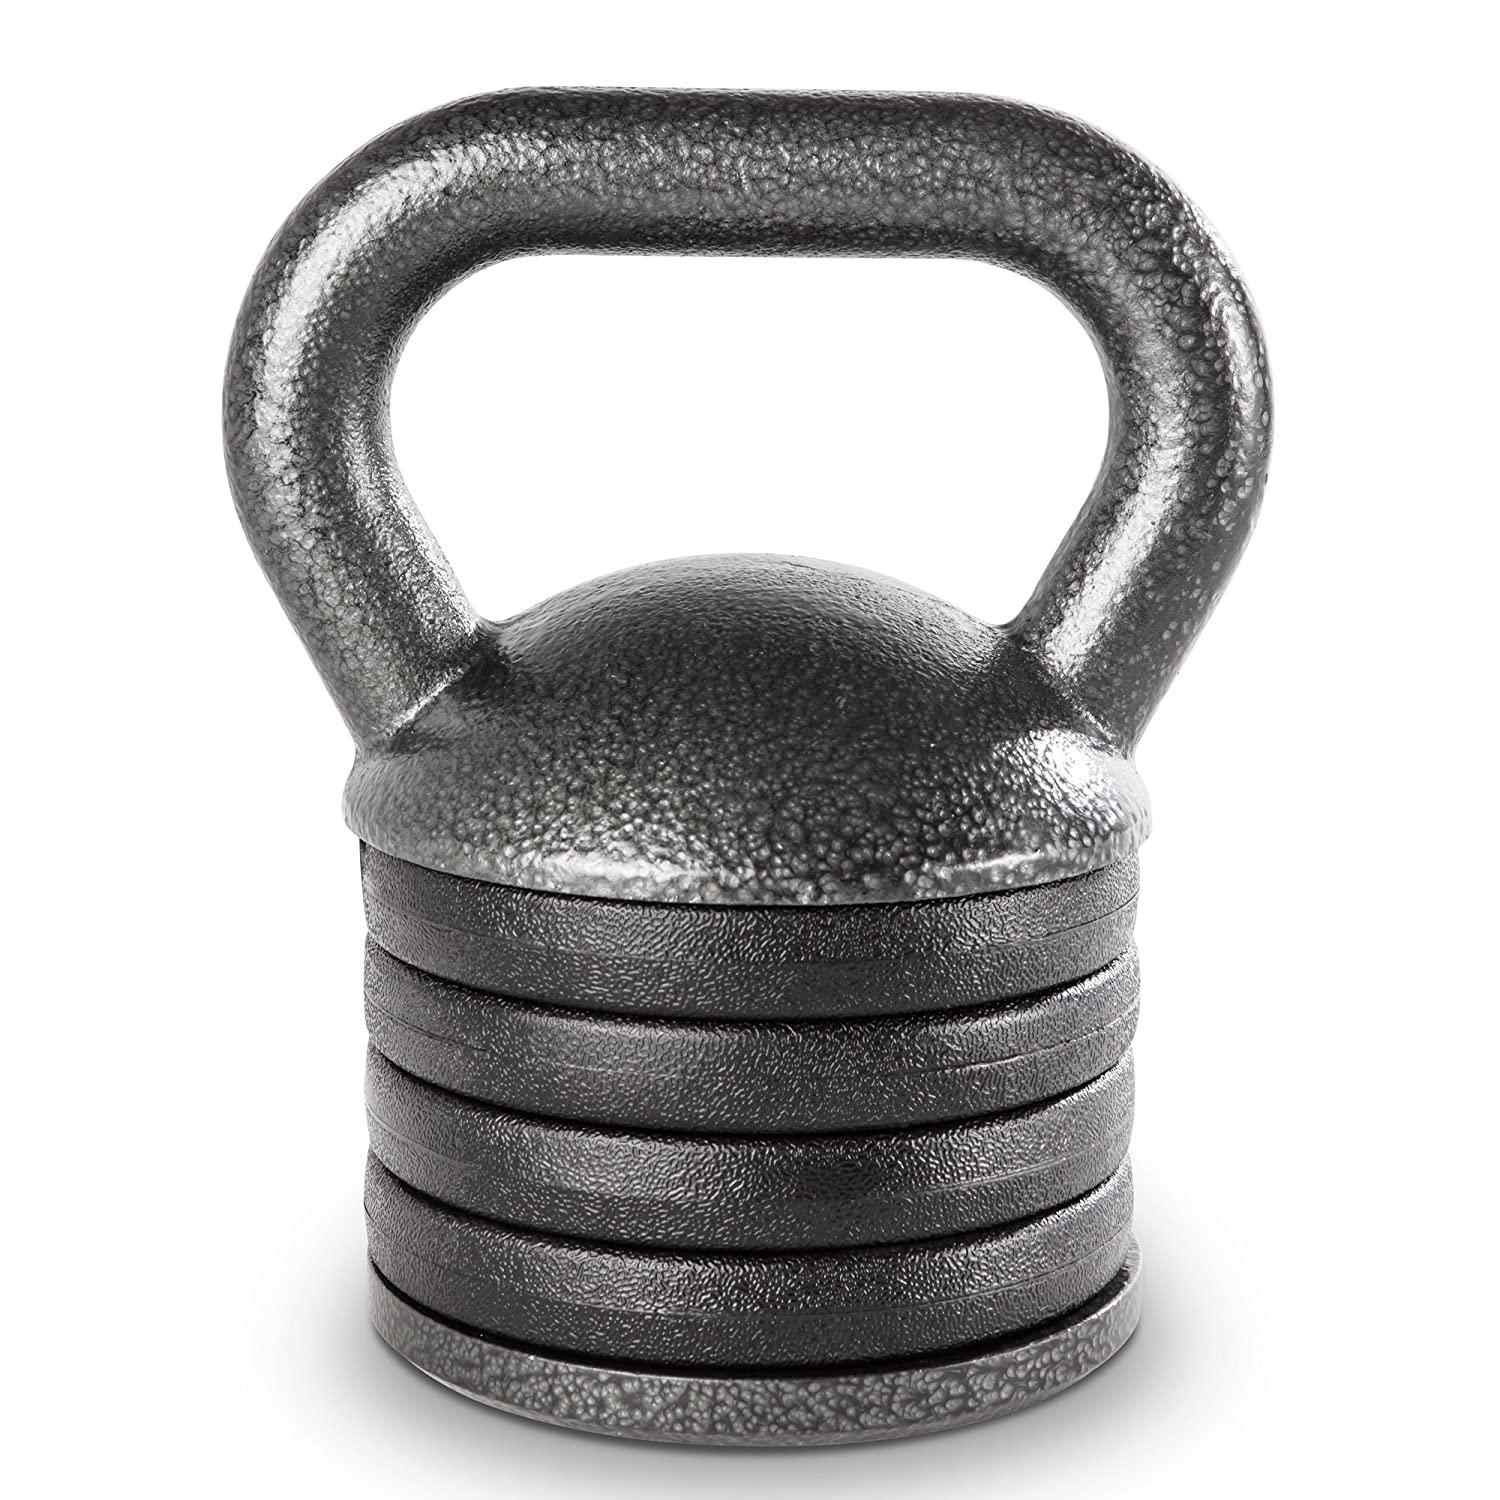 Apex Adjustable Heavy-Duty Exercise Kettlebell Weight Set Strength Training and Weightlifting Equipment for Home Gyms APKB-5009